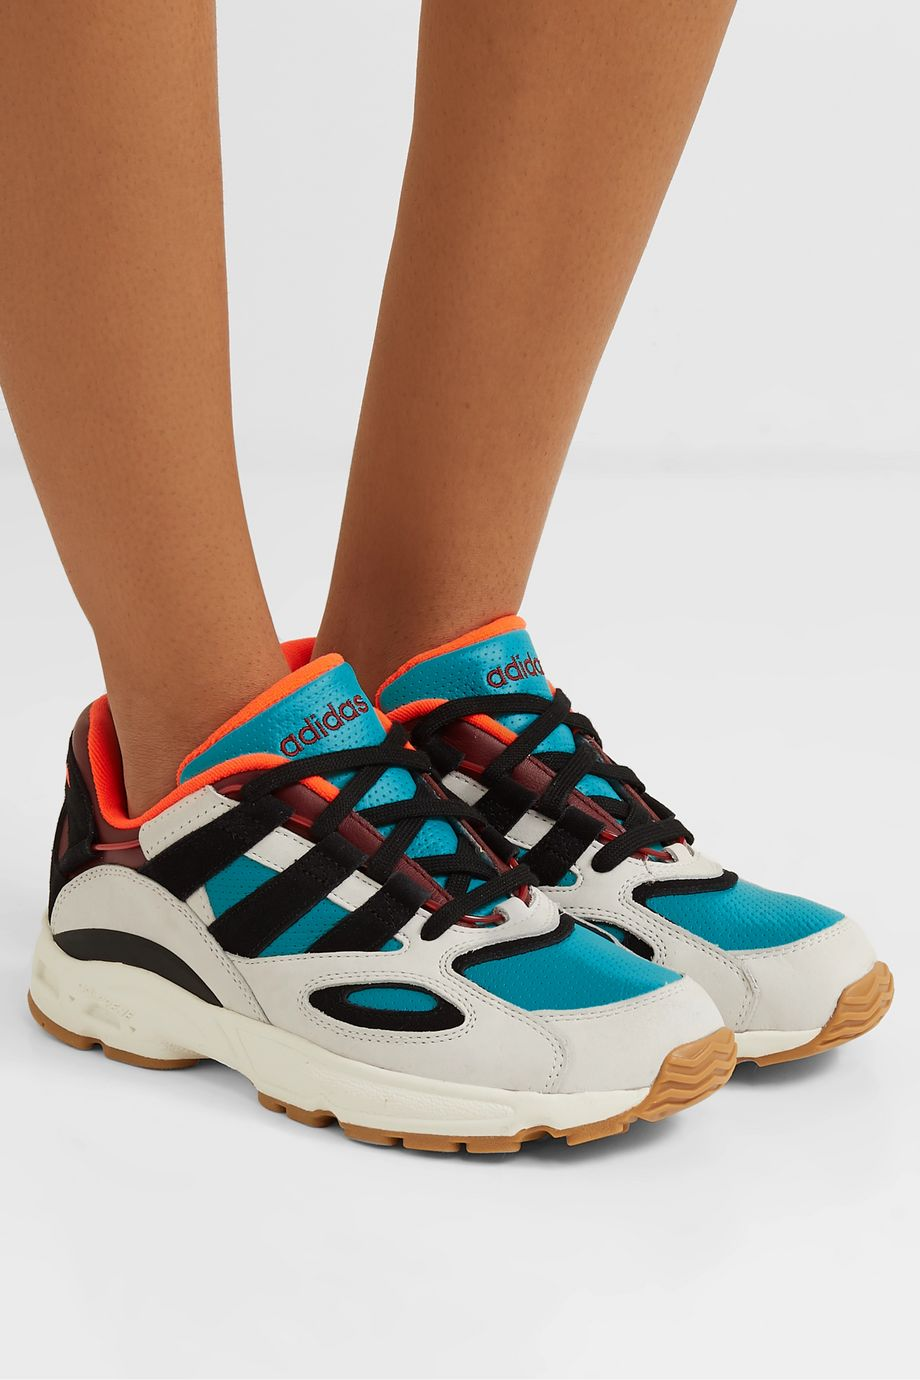 adidas Originals LXCON 94 leather and suede sneakers